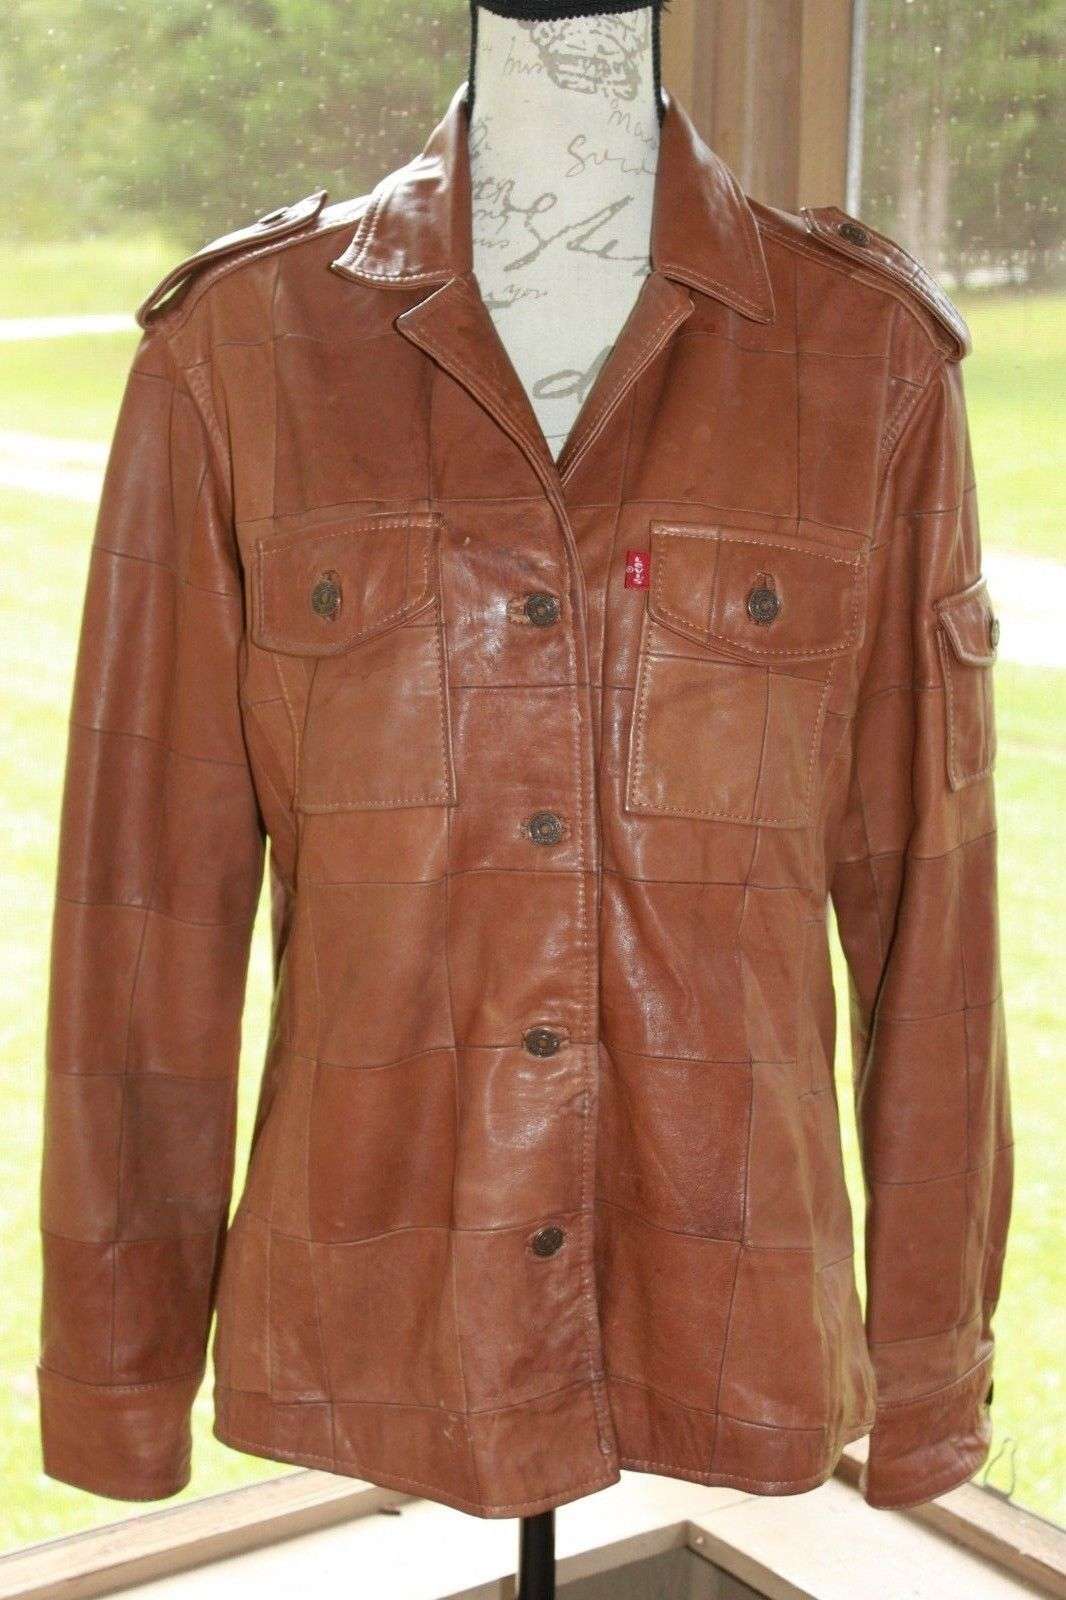 Primary image for Levi's Size Large Dry Goods Caramel Brown Leather Vintage Women's Jacket (BJ)